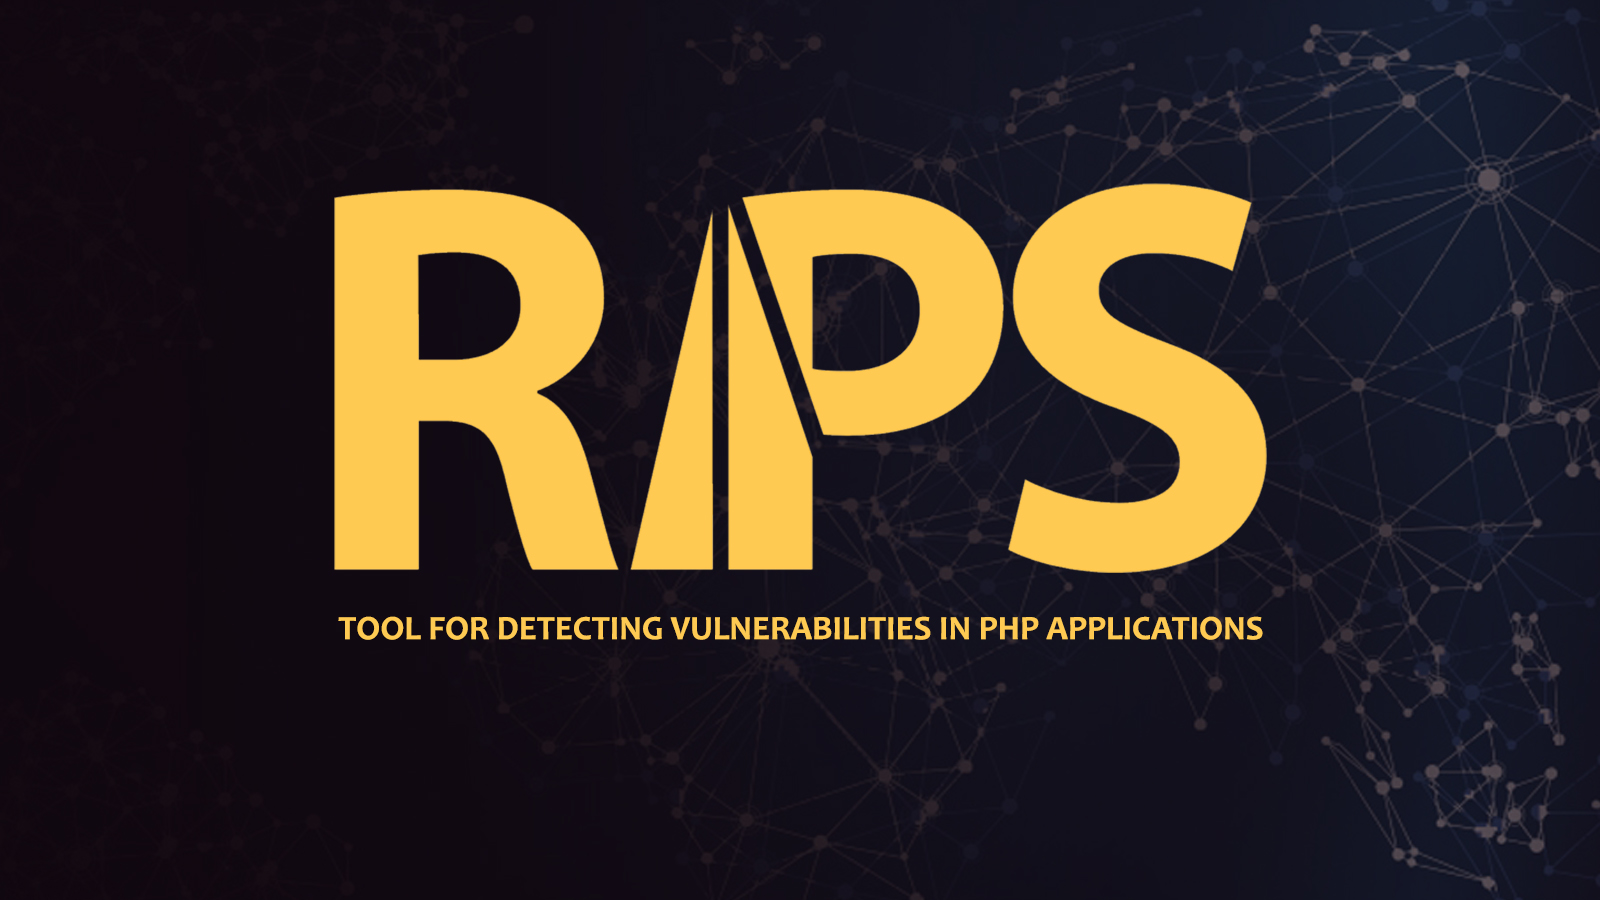 RIPS - Tool For Detecting Vulnerabilities in PHP Applications